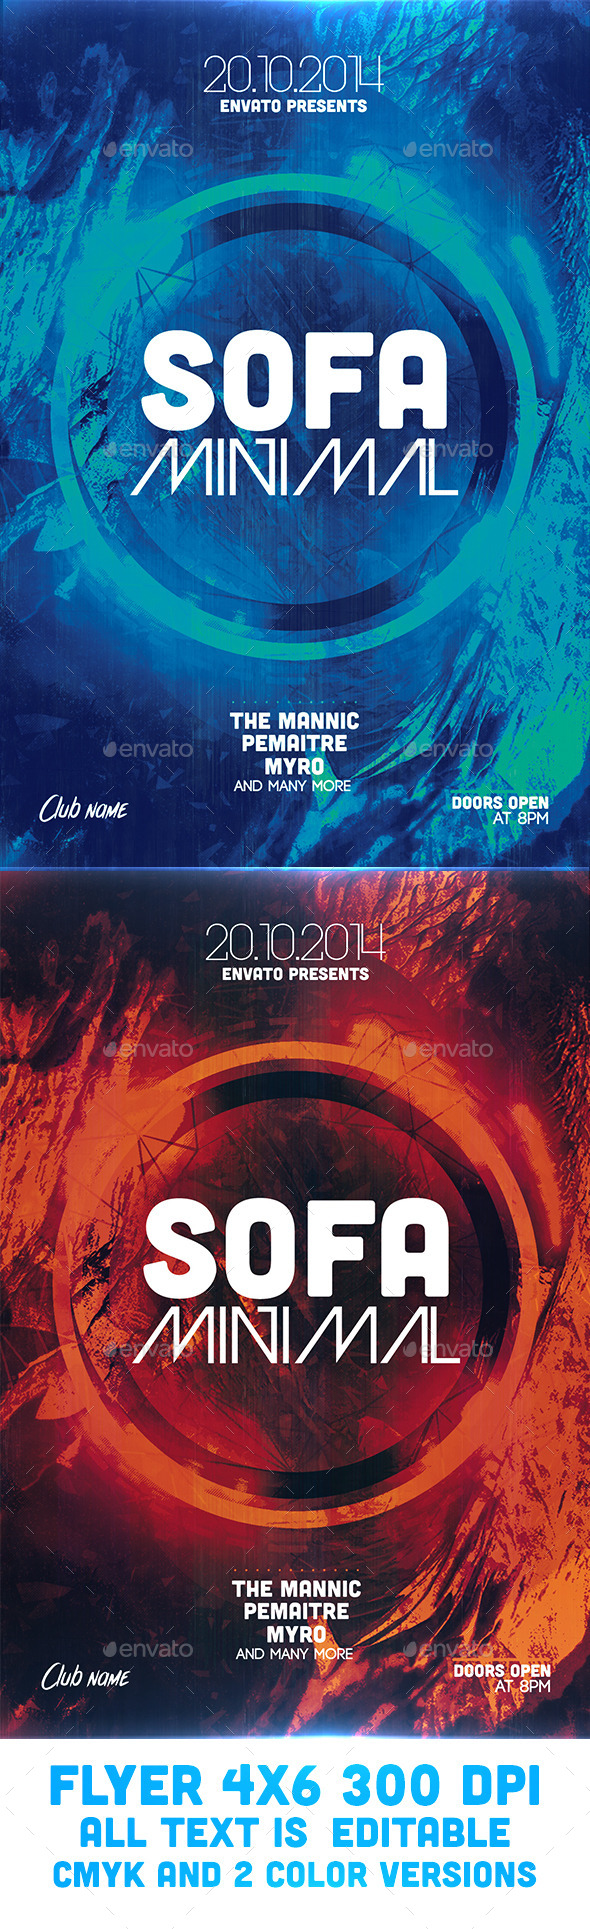 Sofa Minimal Flyer Template - Clubs & Parties Events